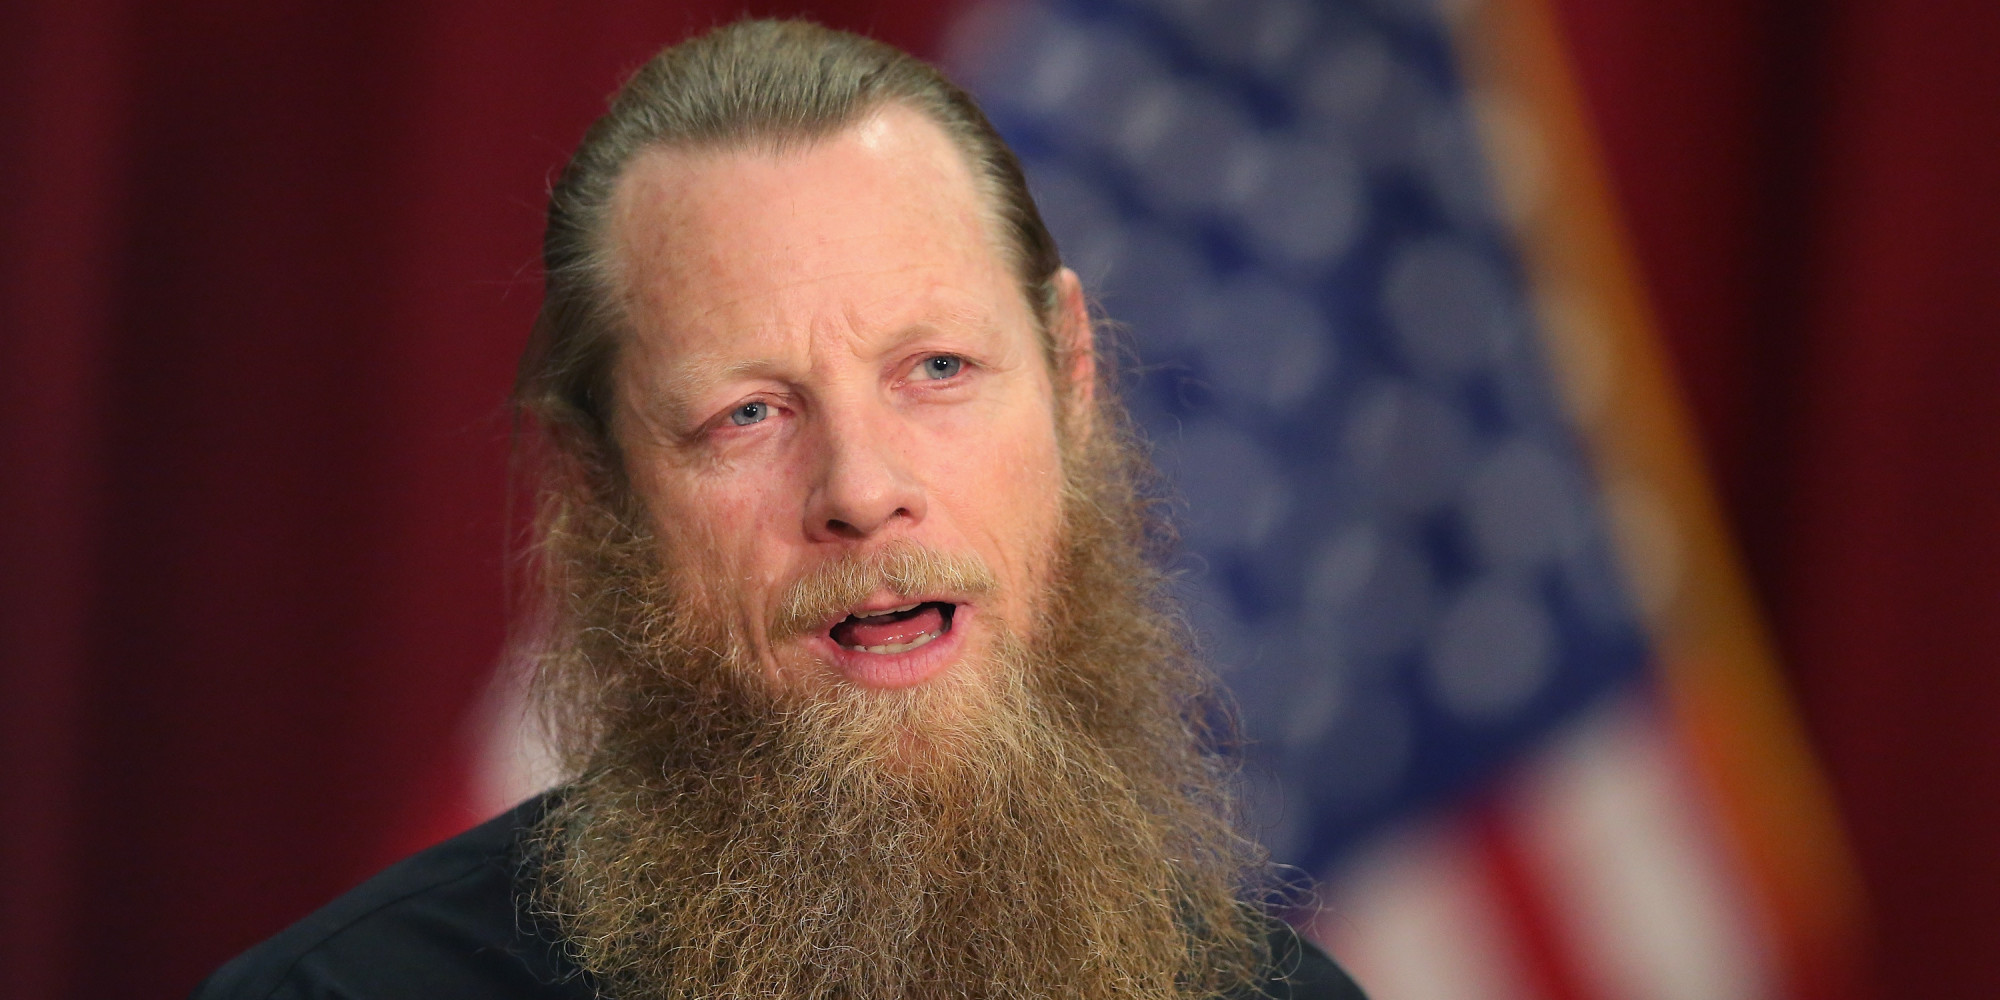 Why Fox News and Bill O'Reilly's Insinuation About Robert Bergdahl's Beard Is Unacceptable